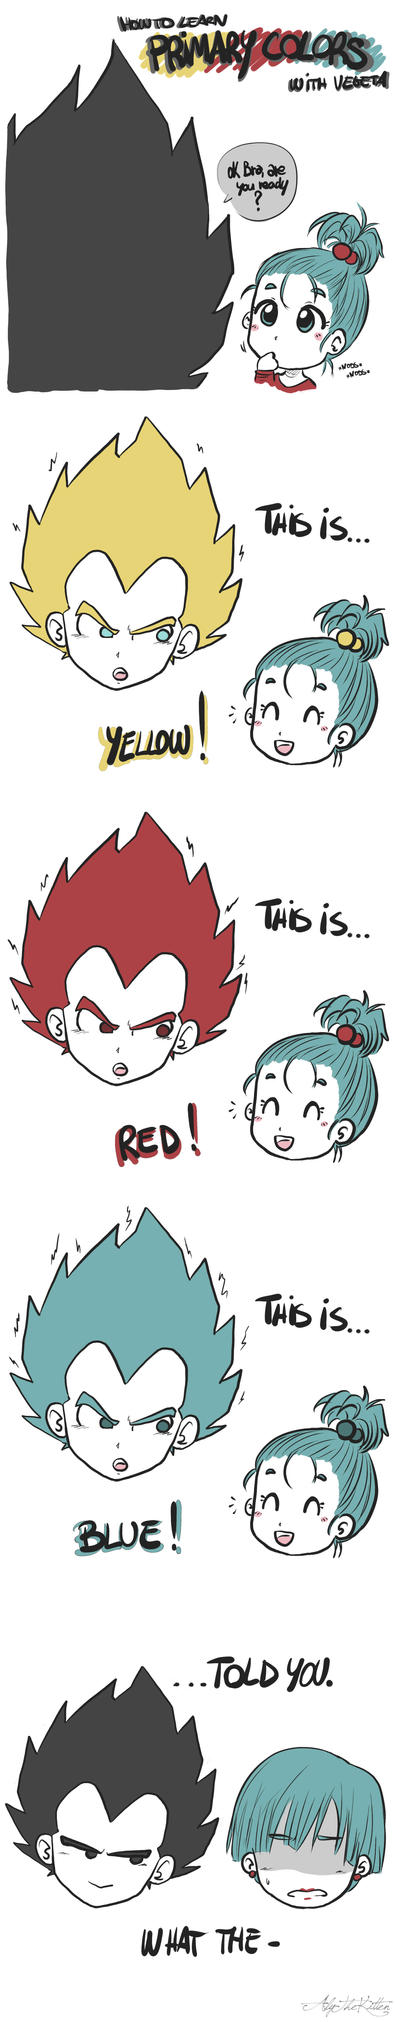 Primary Colors with Vegeta by AlyTheKitten